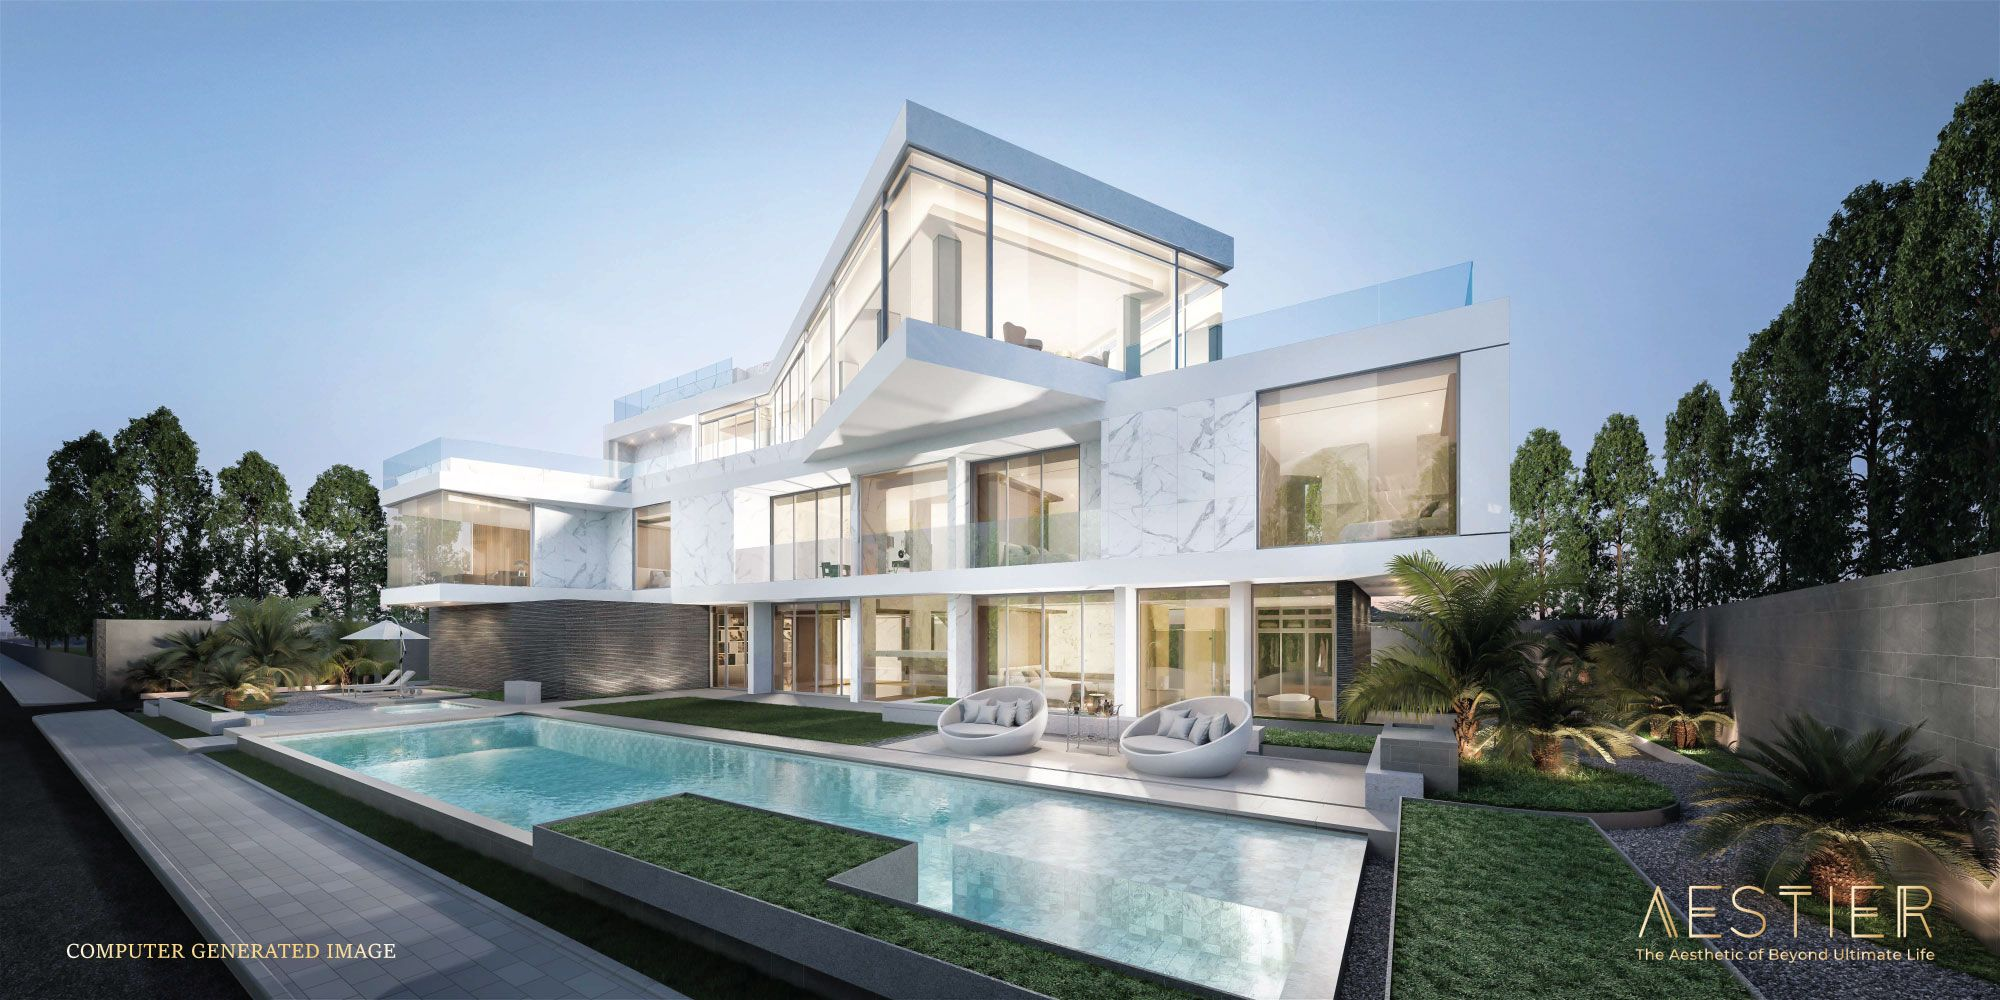 Ametus Development Enters The Luxury Property Market With An 'Art Makes Trust' Philosophy